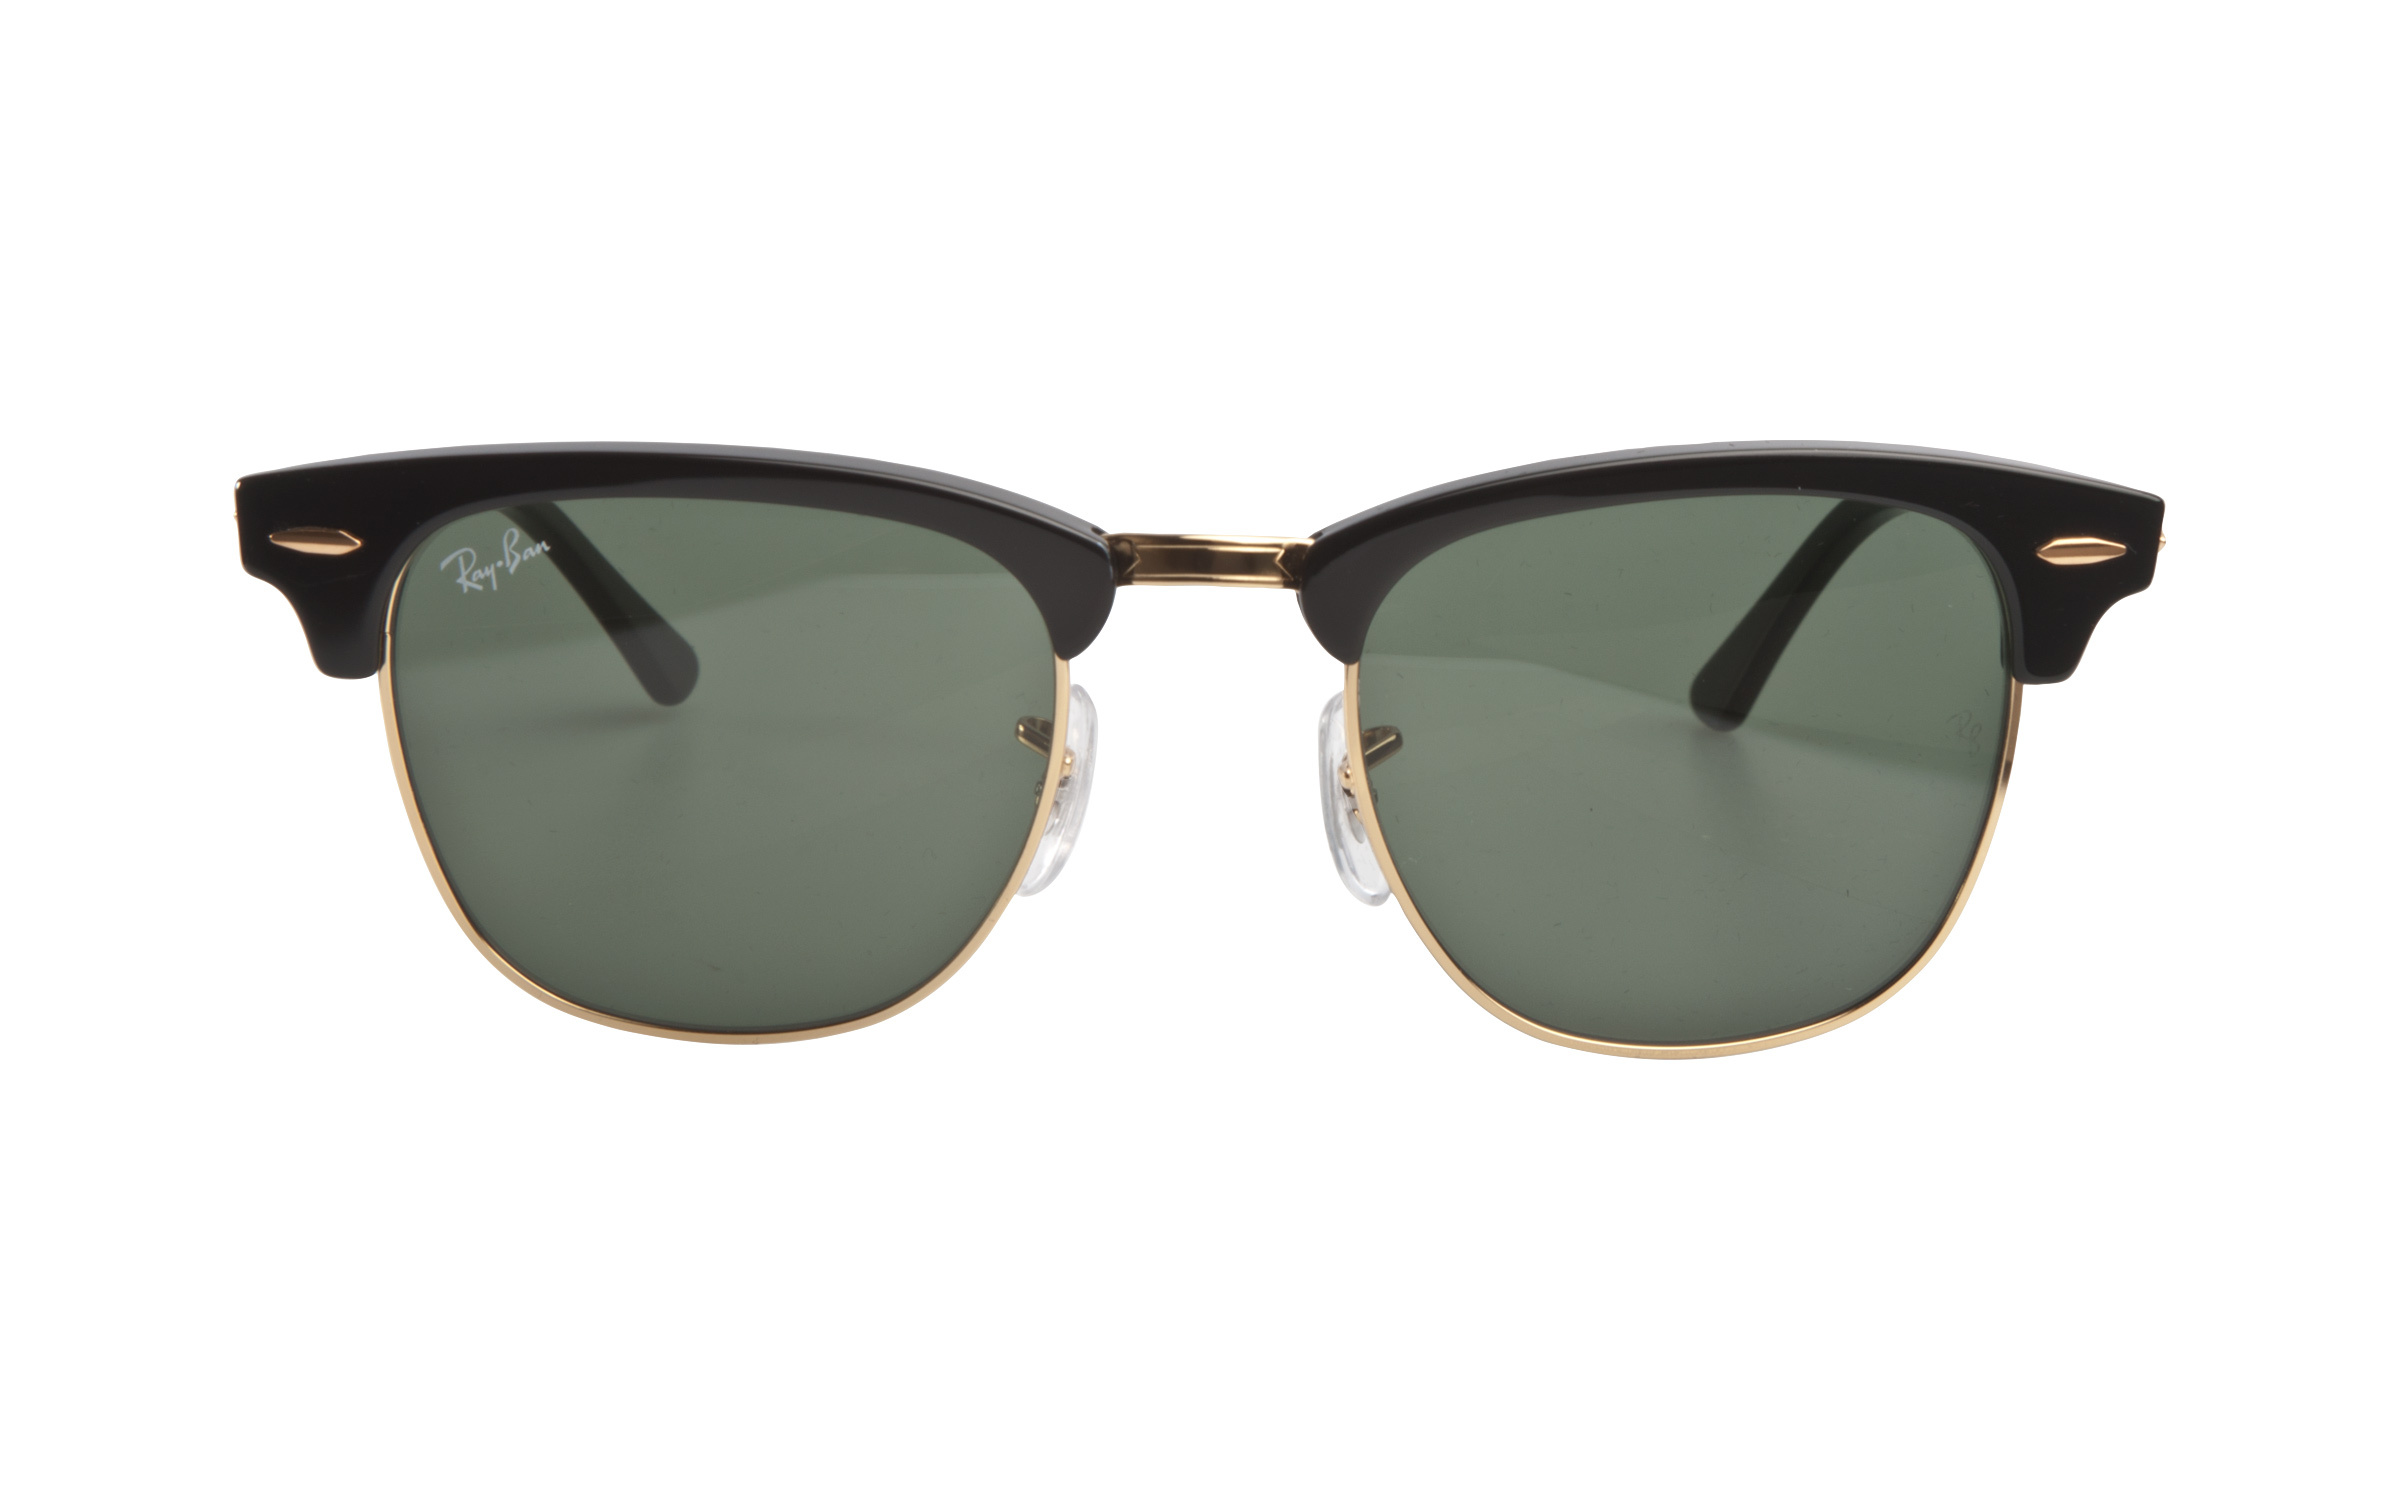 black ray bans  Shop for Ray-Ban sunglasses online and experience our friendly ...